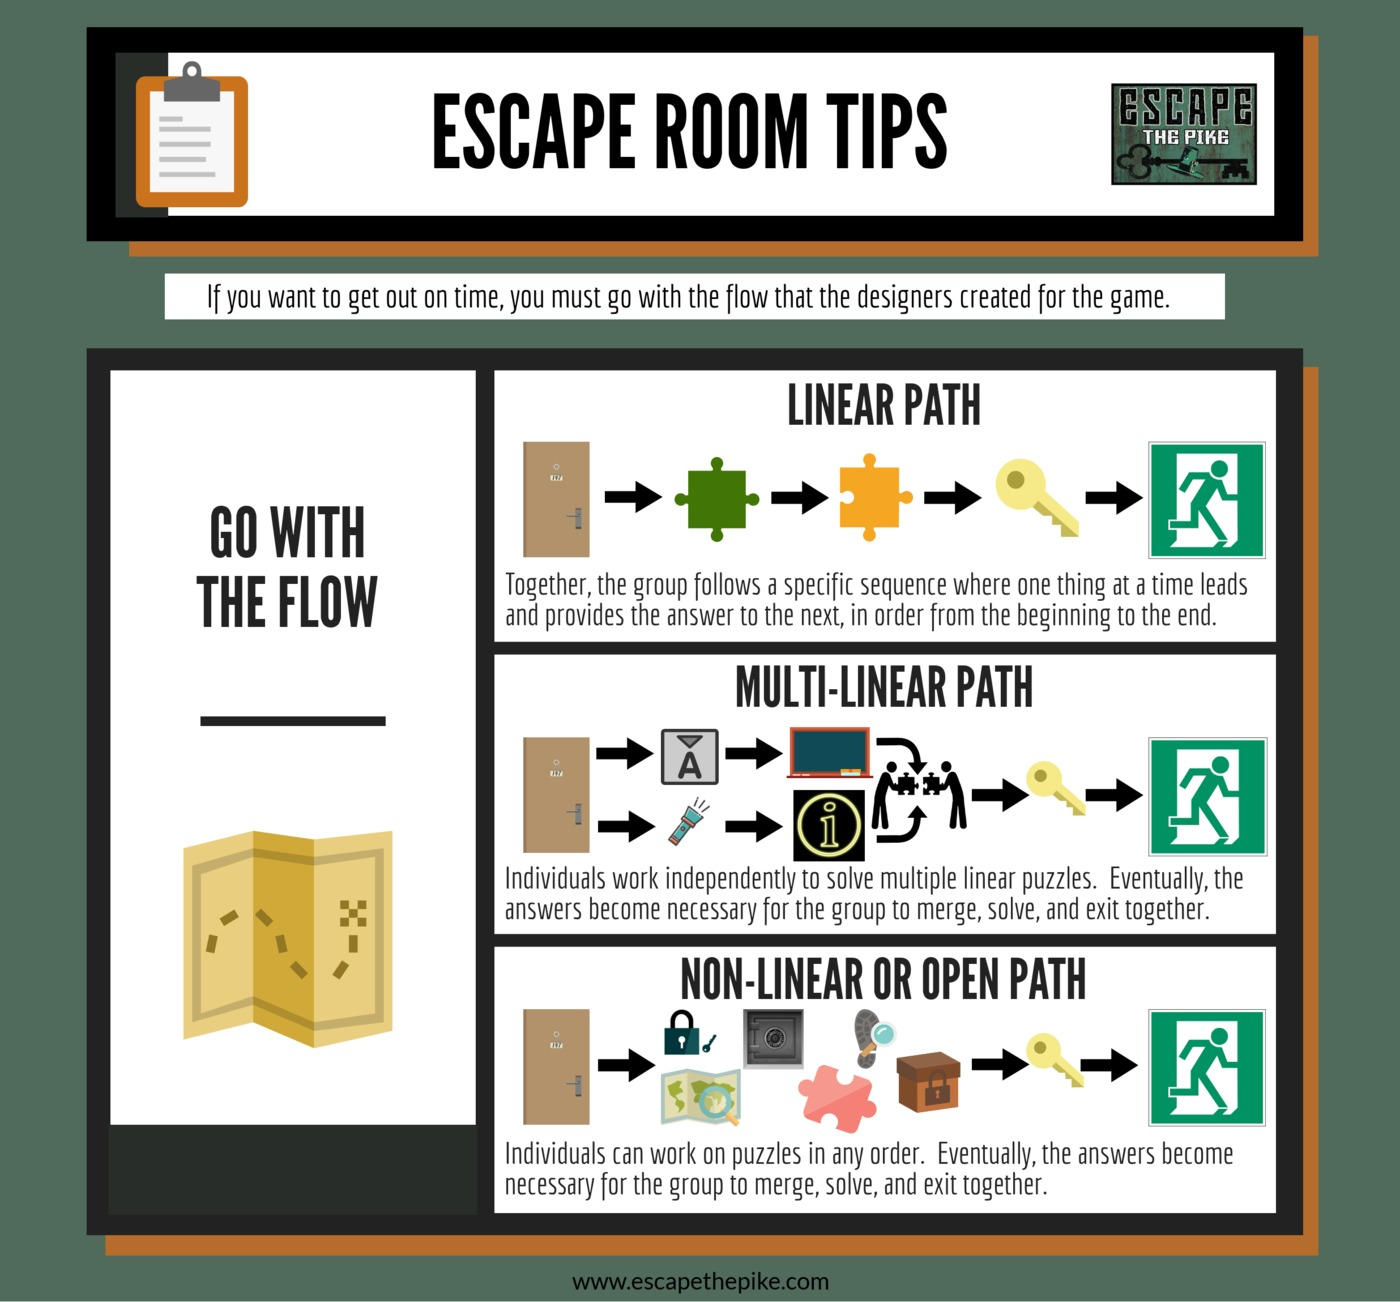 Tip #5- When you step into an escape room, remember that you are playing a game. Every game has a means by which it can be won. As you begin to discover and solve things, ask yourself what kind of game you think it is. Did the game designer create it so that one thing leads to another (linear path)? Was it designed that the group must stay together? Can your team split up to work on various tasks (non-linear or open path)? Are there things that appear to go together (multi-linear path)?